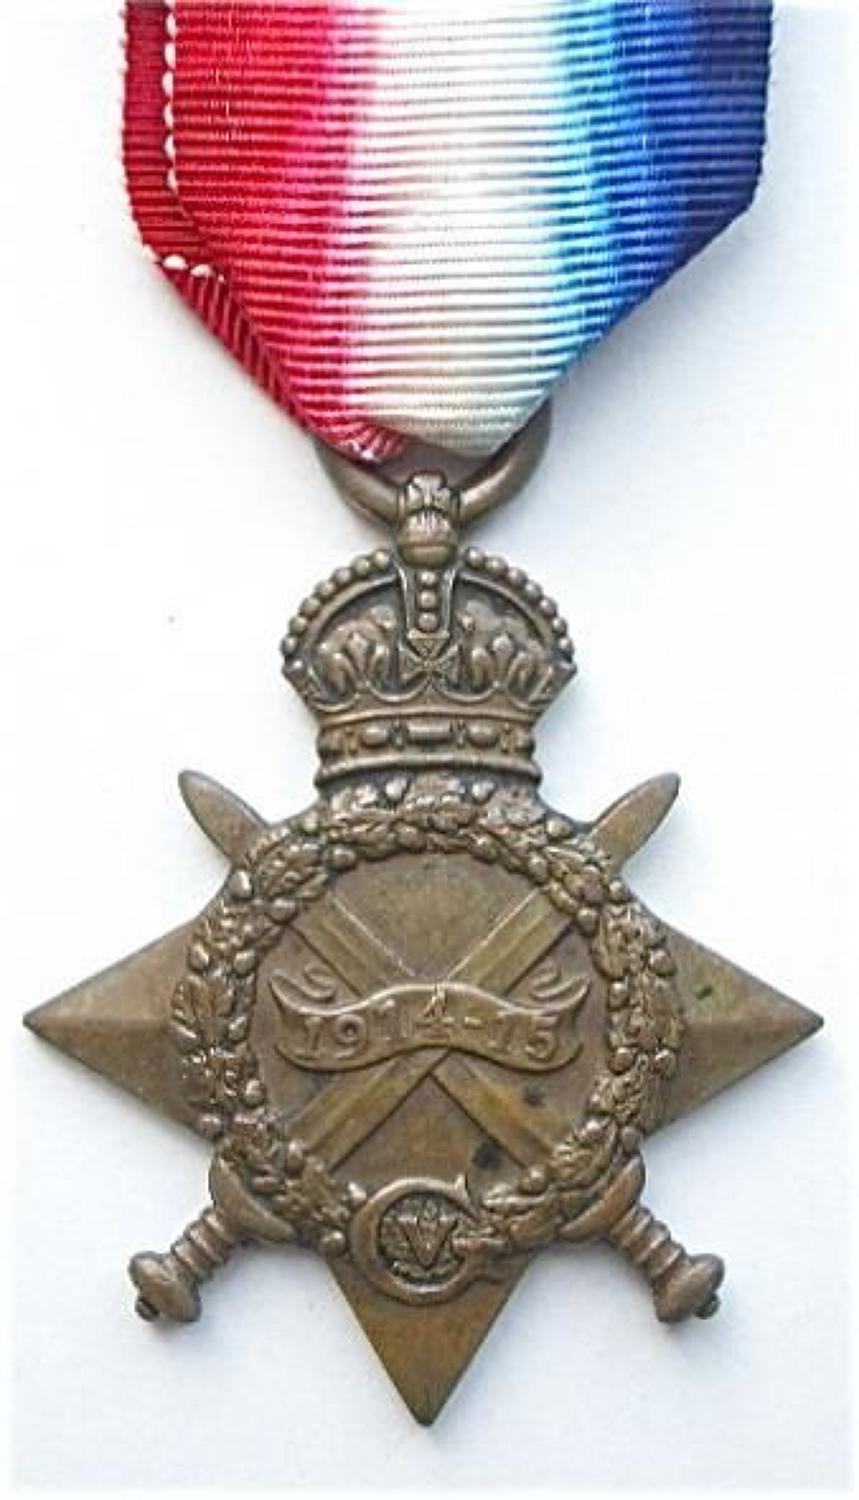 WW1 West Yorkshire Regiment Gallipoli Veteran 1914/15 Star Medal.